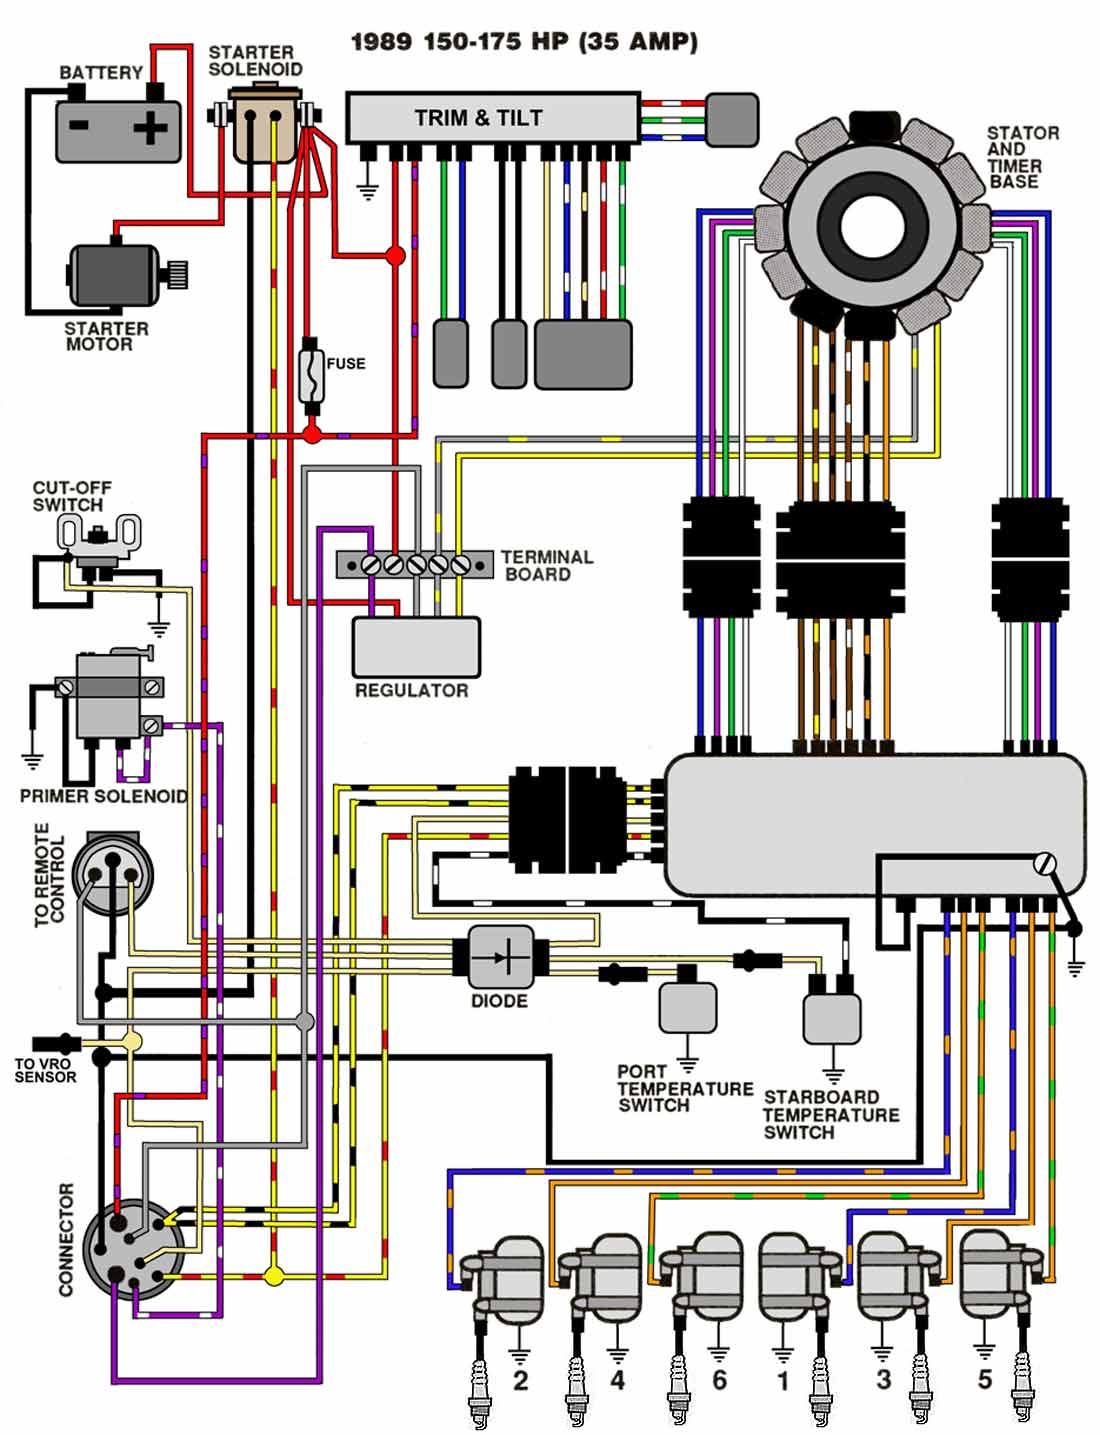 1977 evinrude 35 hp wiring diagram wiring diagram source Evinrude Outboard Wiring Diagram